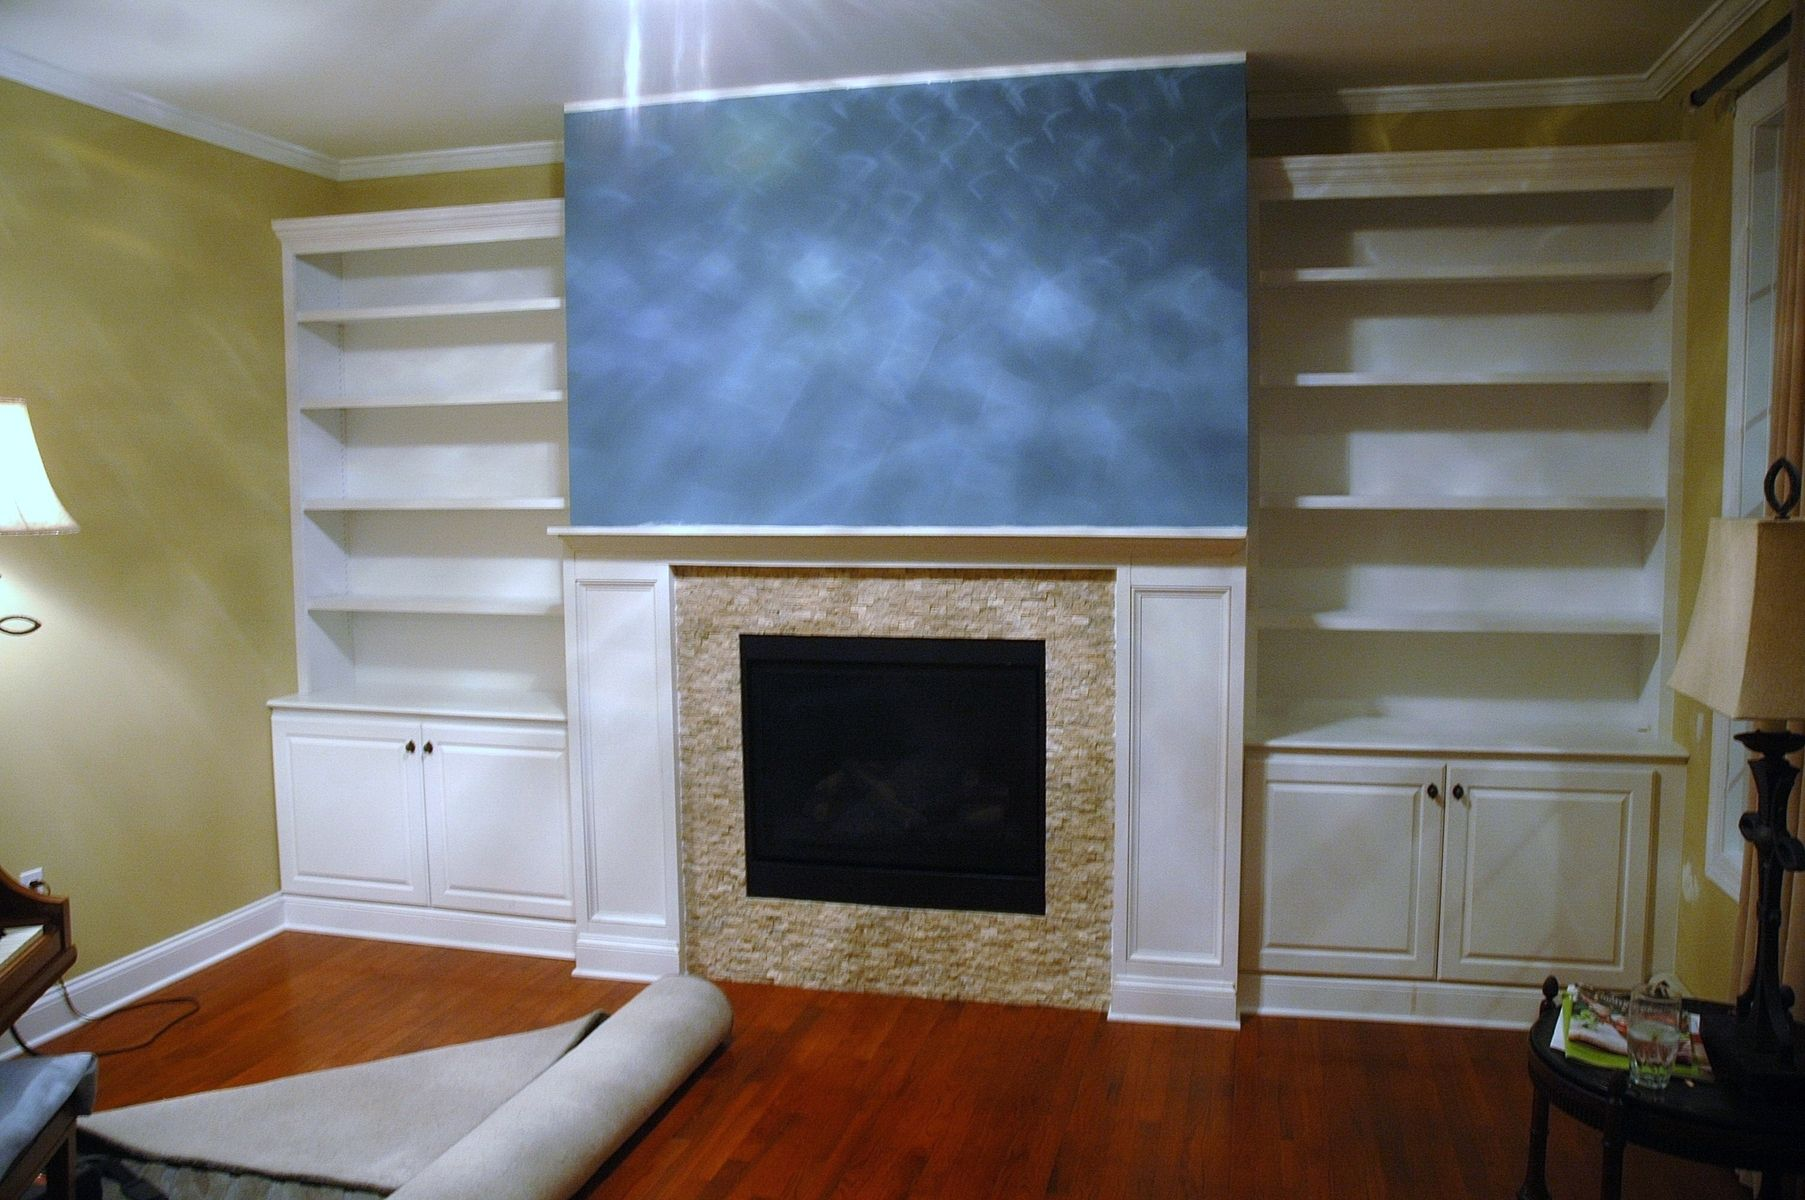 Handmade Built In Bookcases Base Cabinets And Fireplace